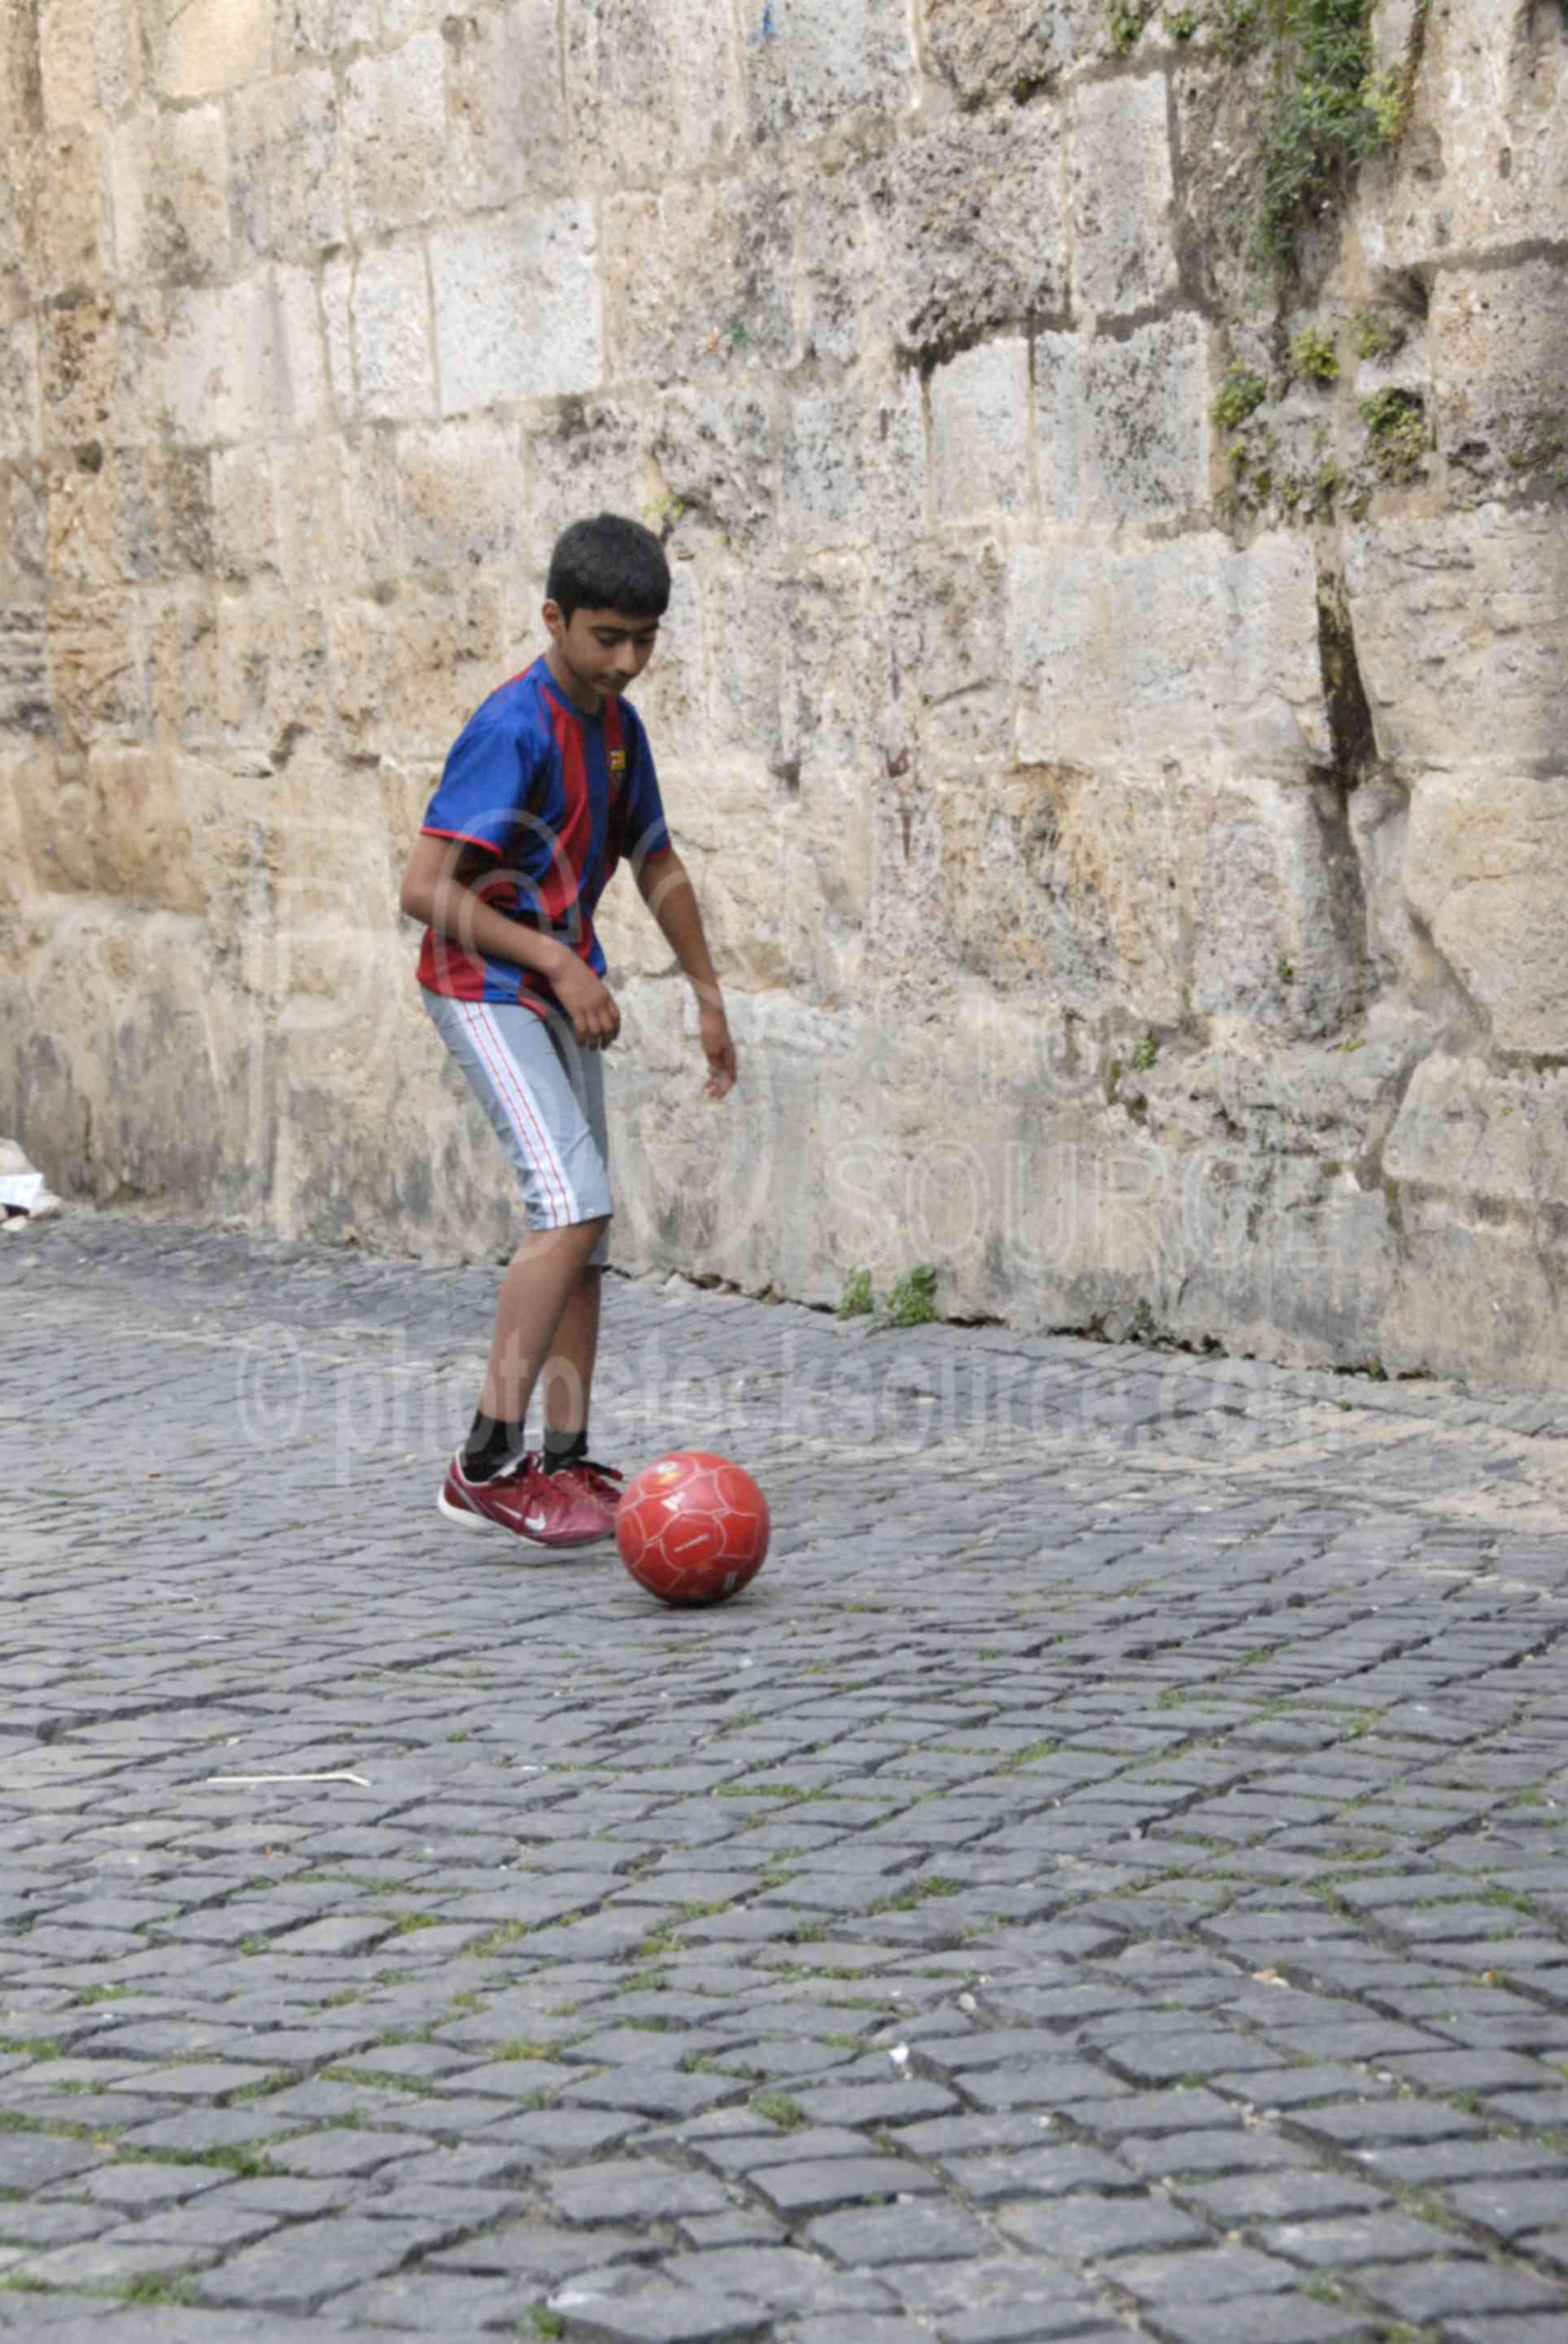 Soccer Boy,boys,young,ball,soccer,football,red ball,child,children,play,playing